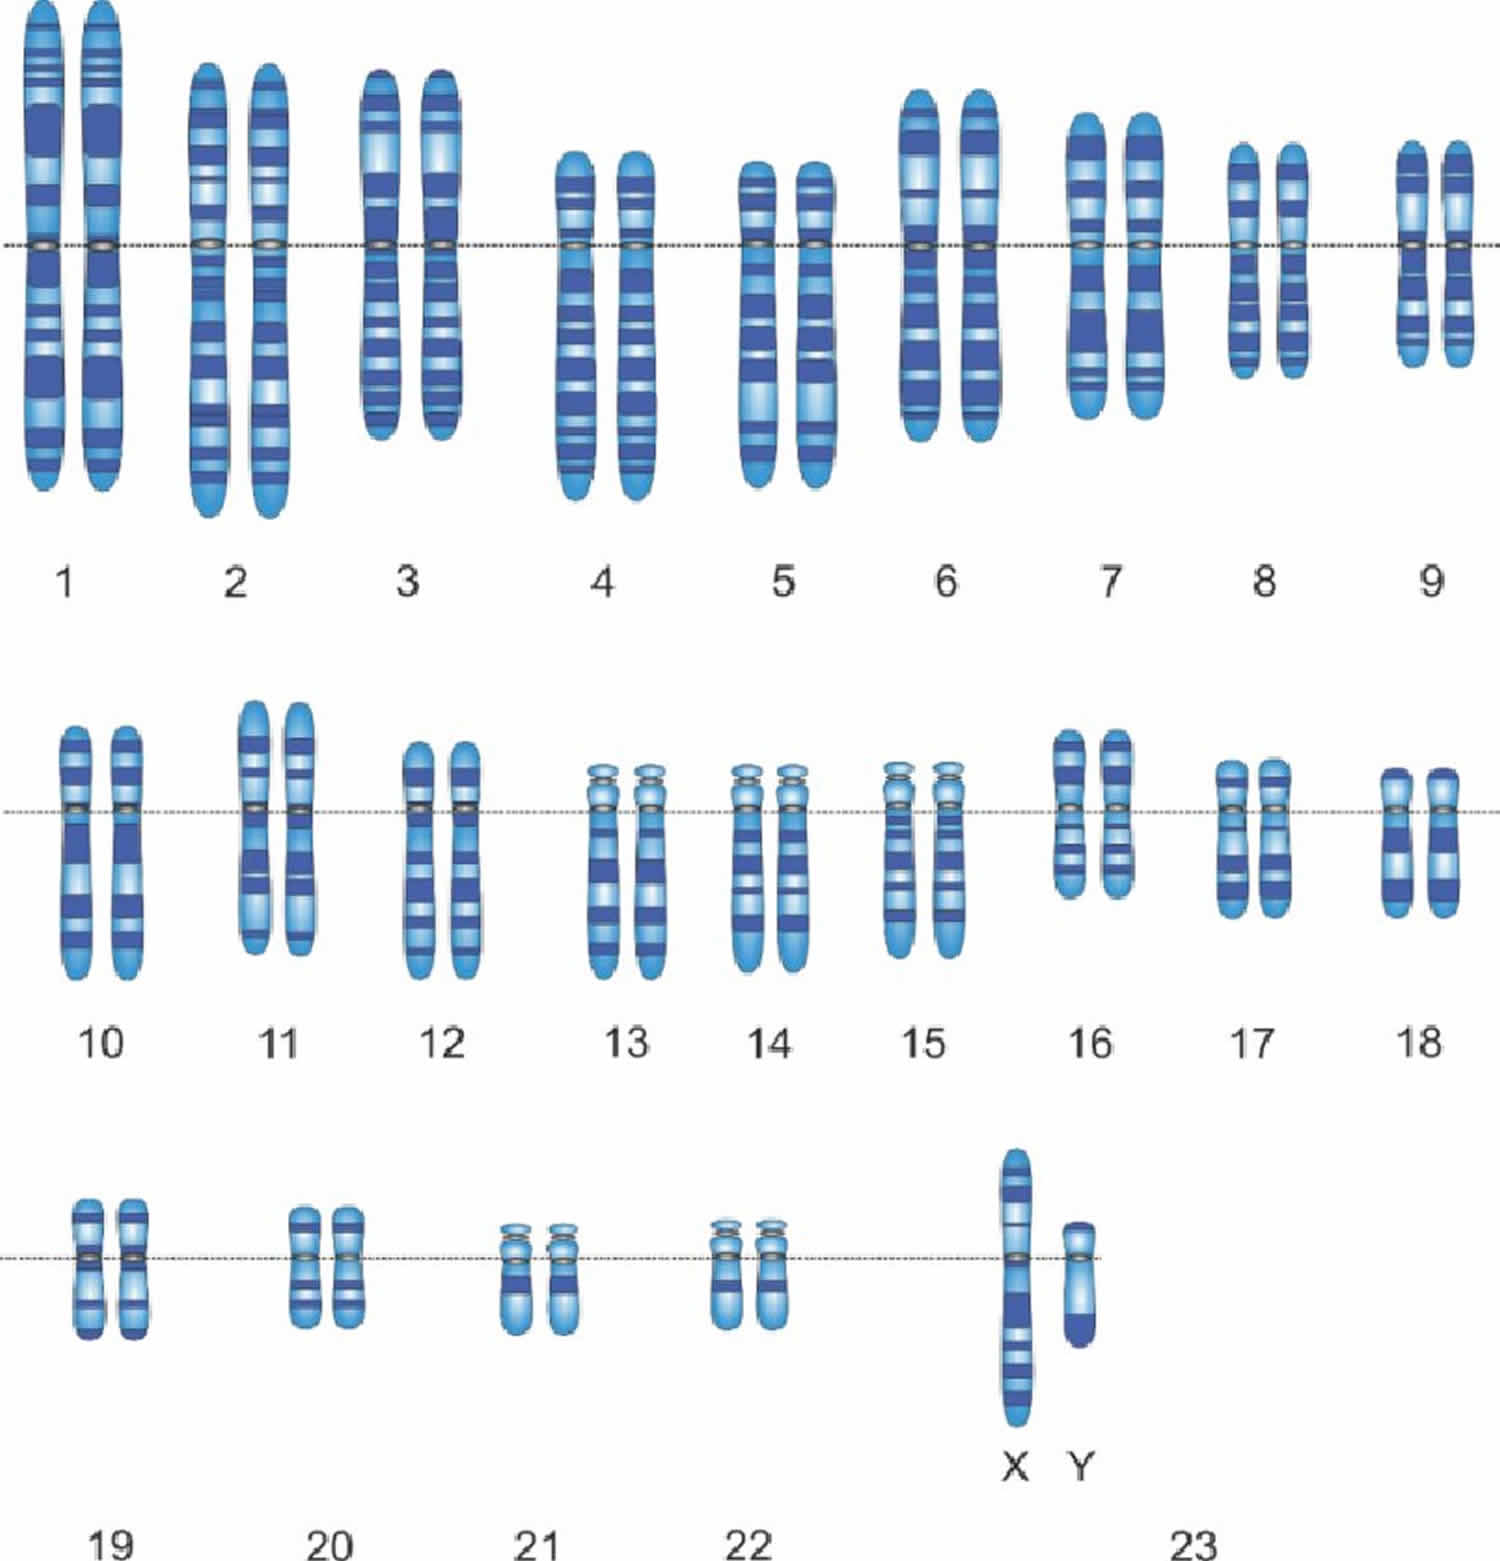 Karyotype Karyotype Test Ampysis Normal Karyotype